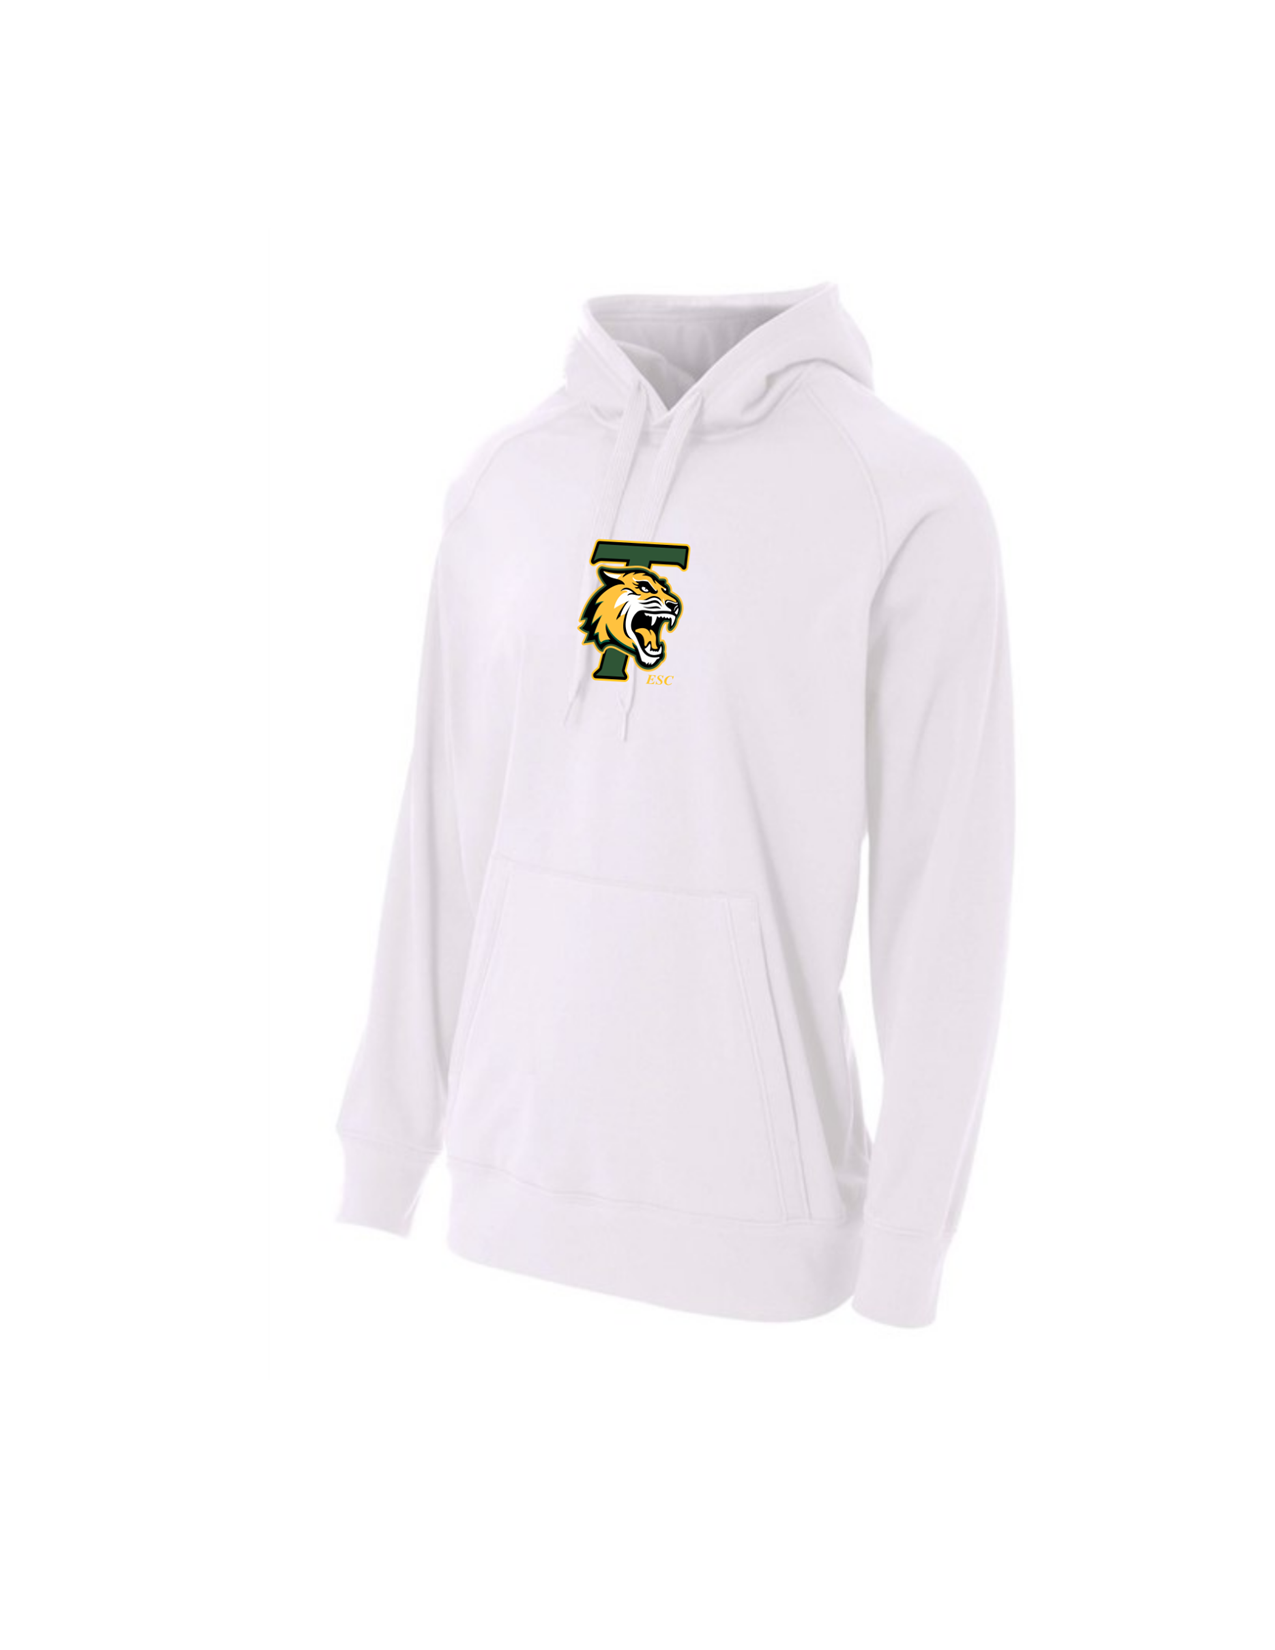 Tiger Player Package Sweatshirt